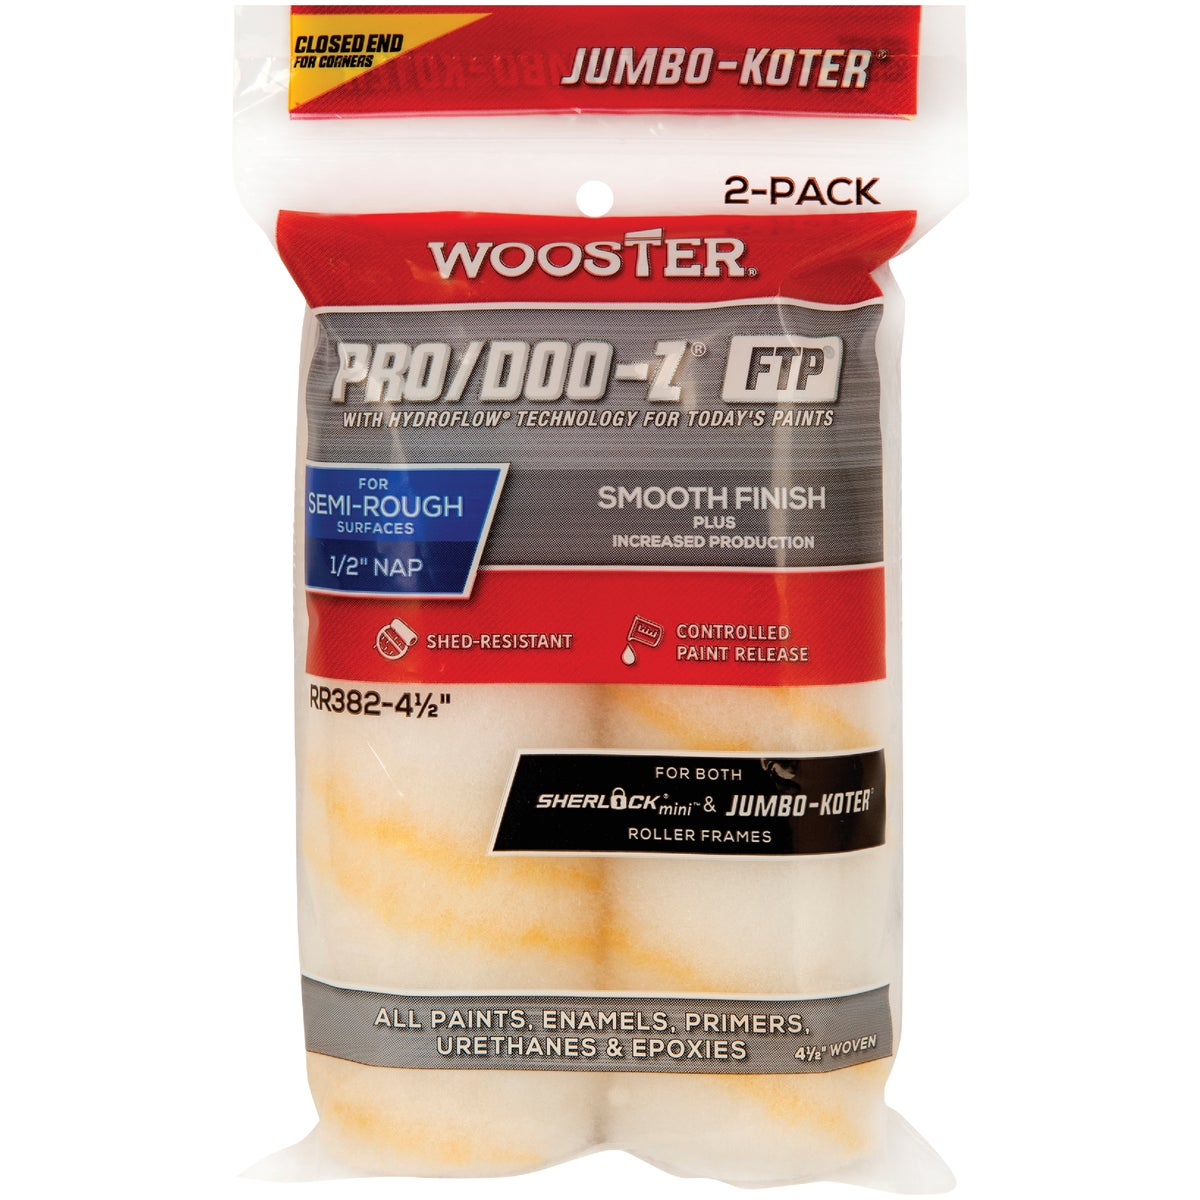 "4-1/2X1/2 ROLLER COVER - RR303-4-1/2"" by Wooster Brush Co"